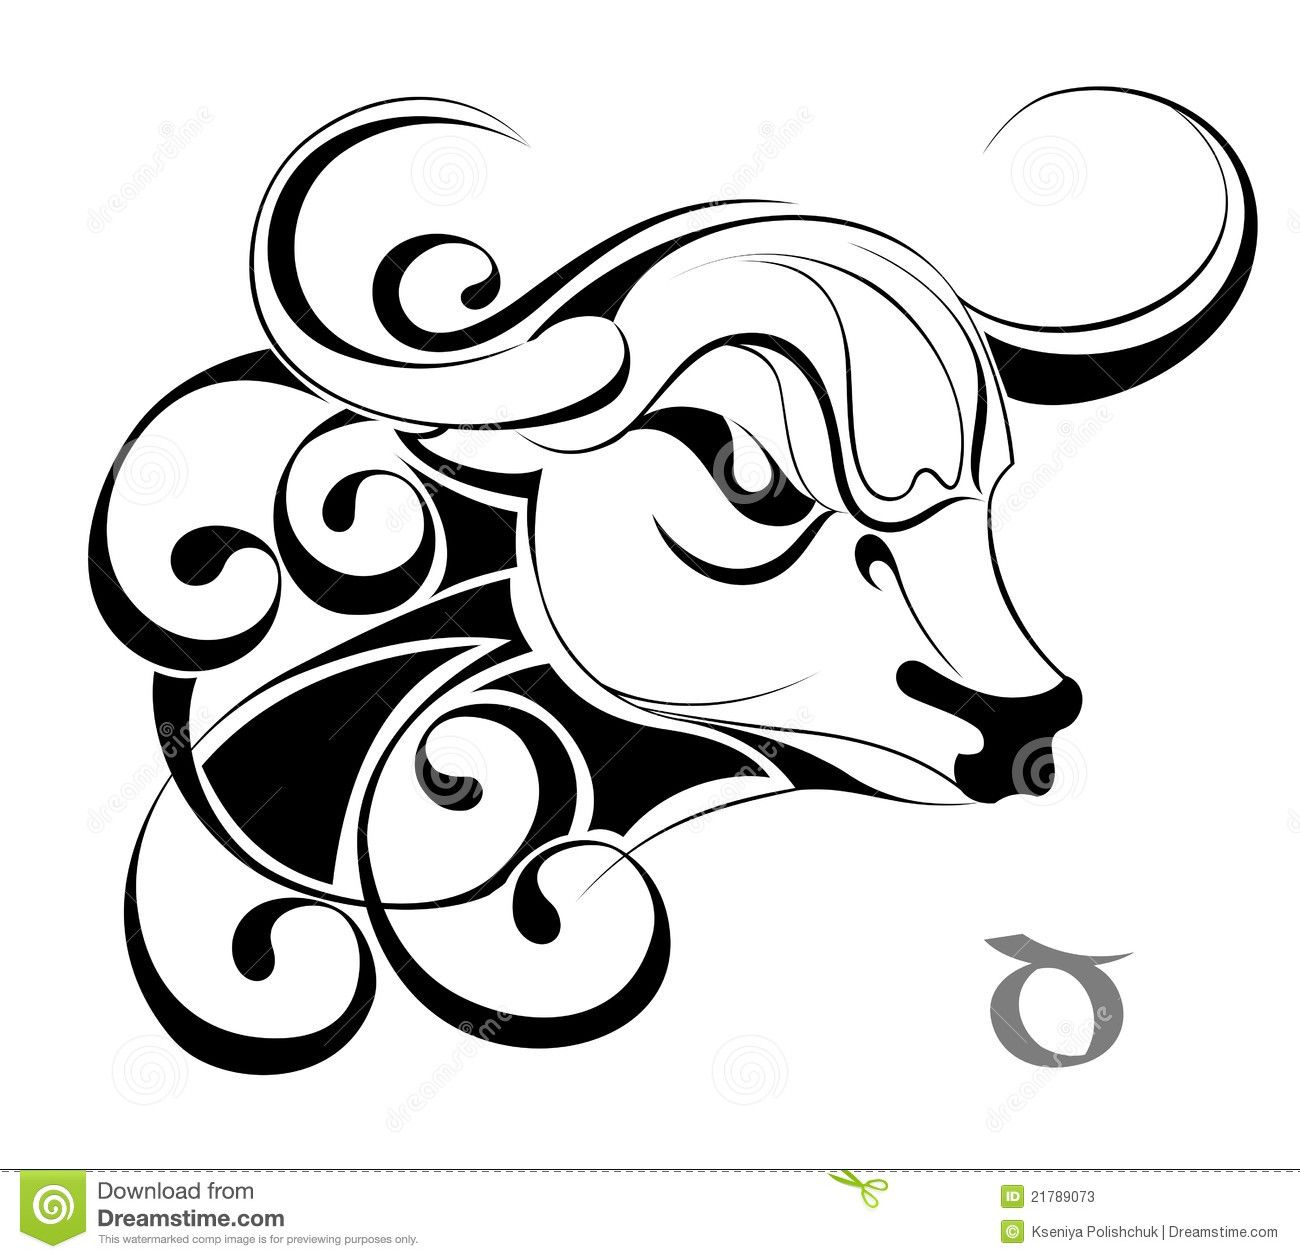 Pics photos taurus tattoos bull tattoo art - Zodiac Sign Taurus Tattoo Art Tattoes Idea 2015 2016